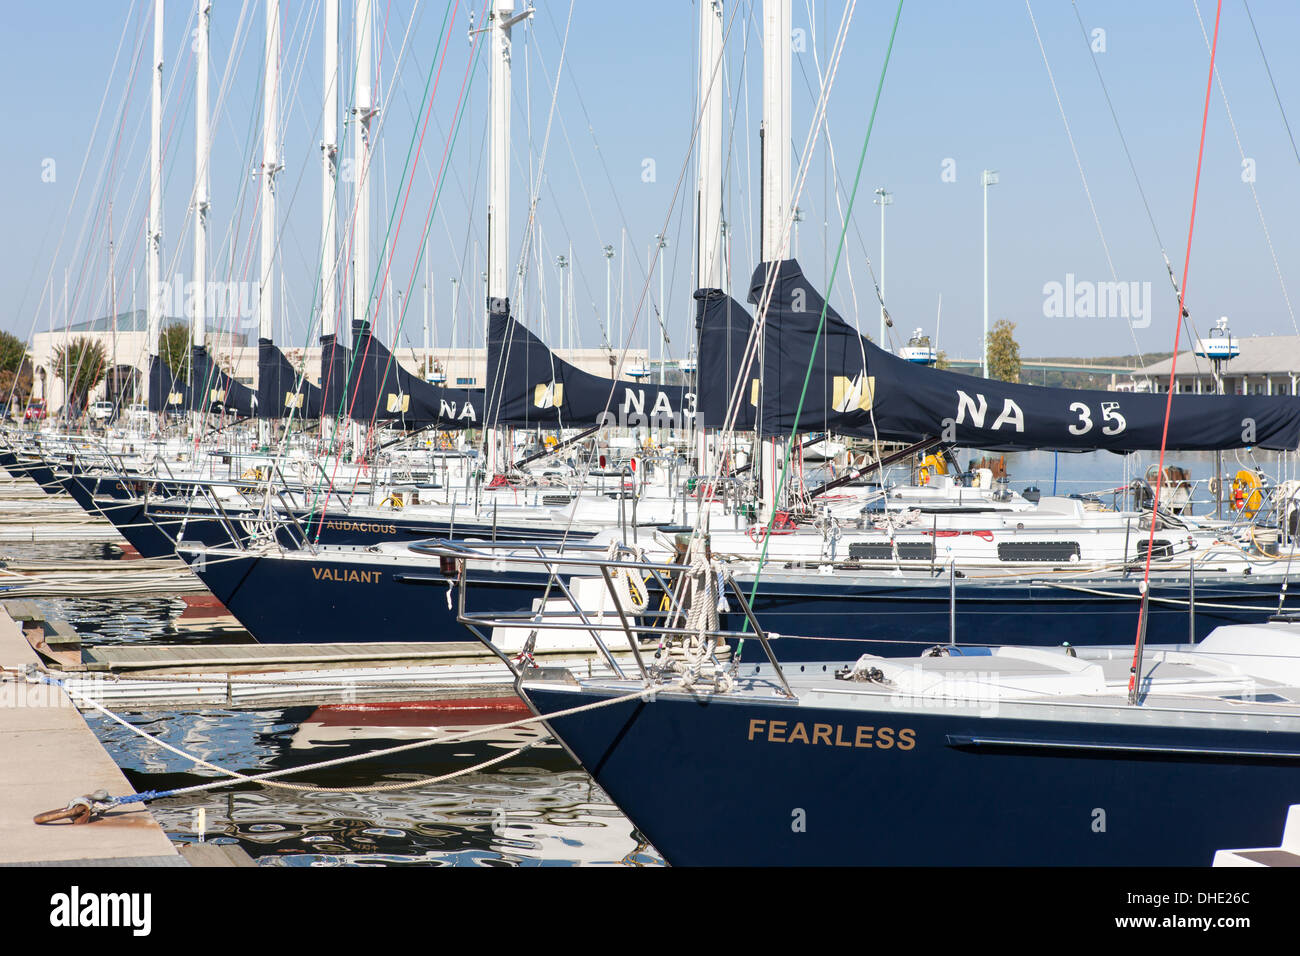 US Navy 44 foot sail training craft (Navy 44s) docked in Santee Basin at the US Naval Academy in Annapolis, Maryland. - Stock Image